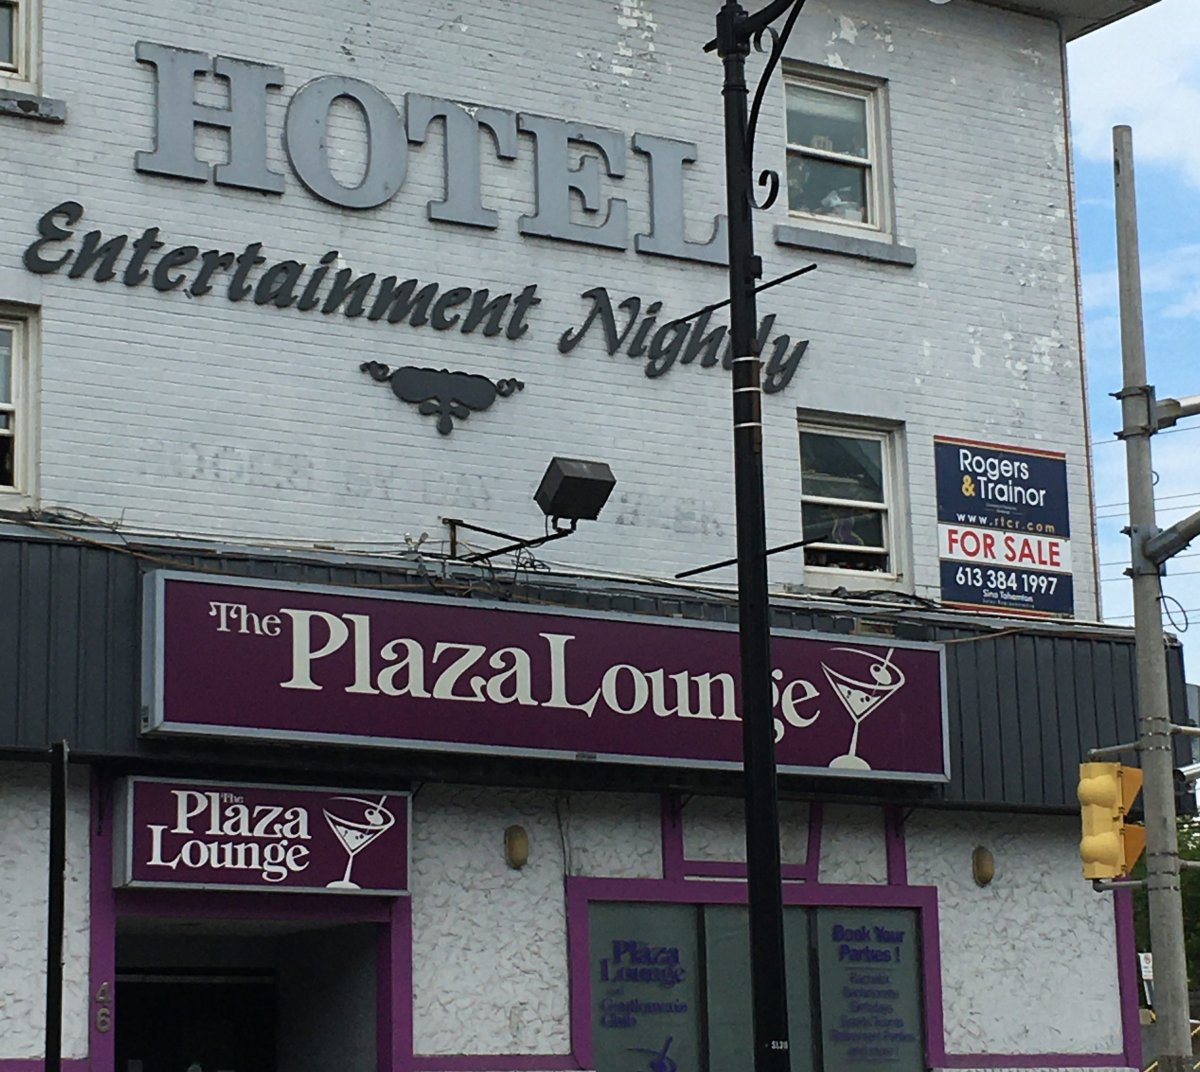 Kingston's only strip club is up for sale after more than a year of closures over the COVID-19 pandemic.